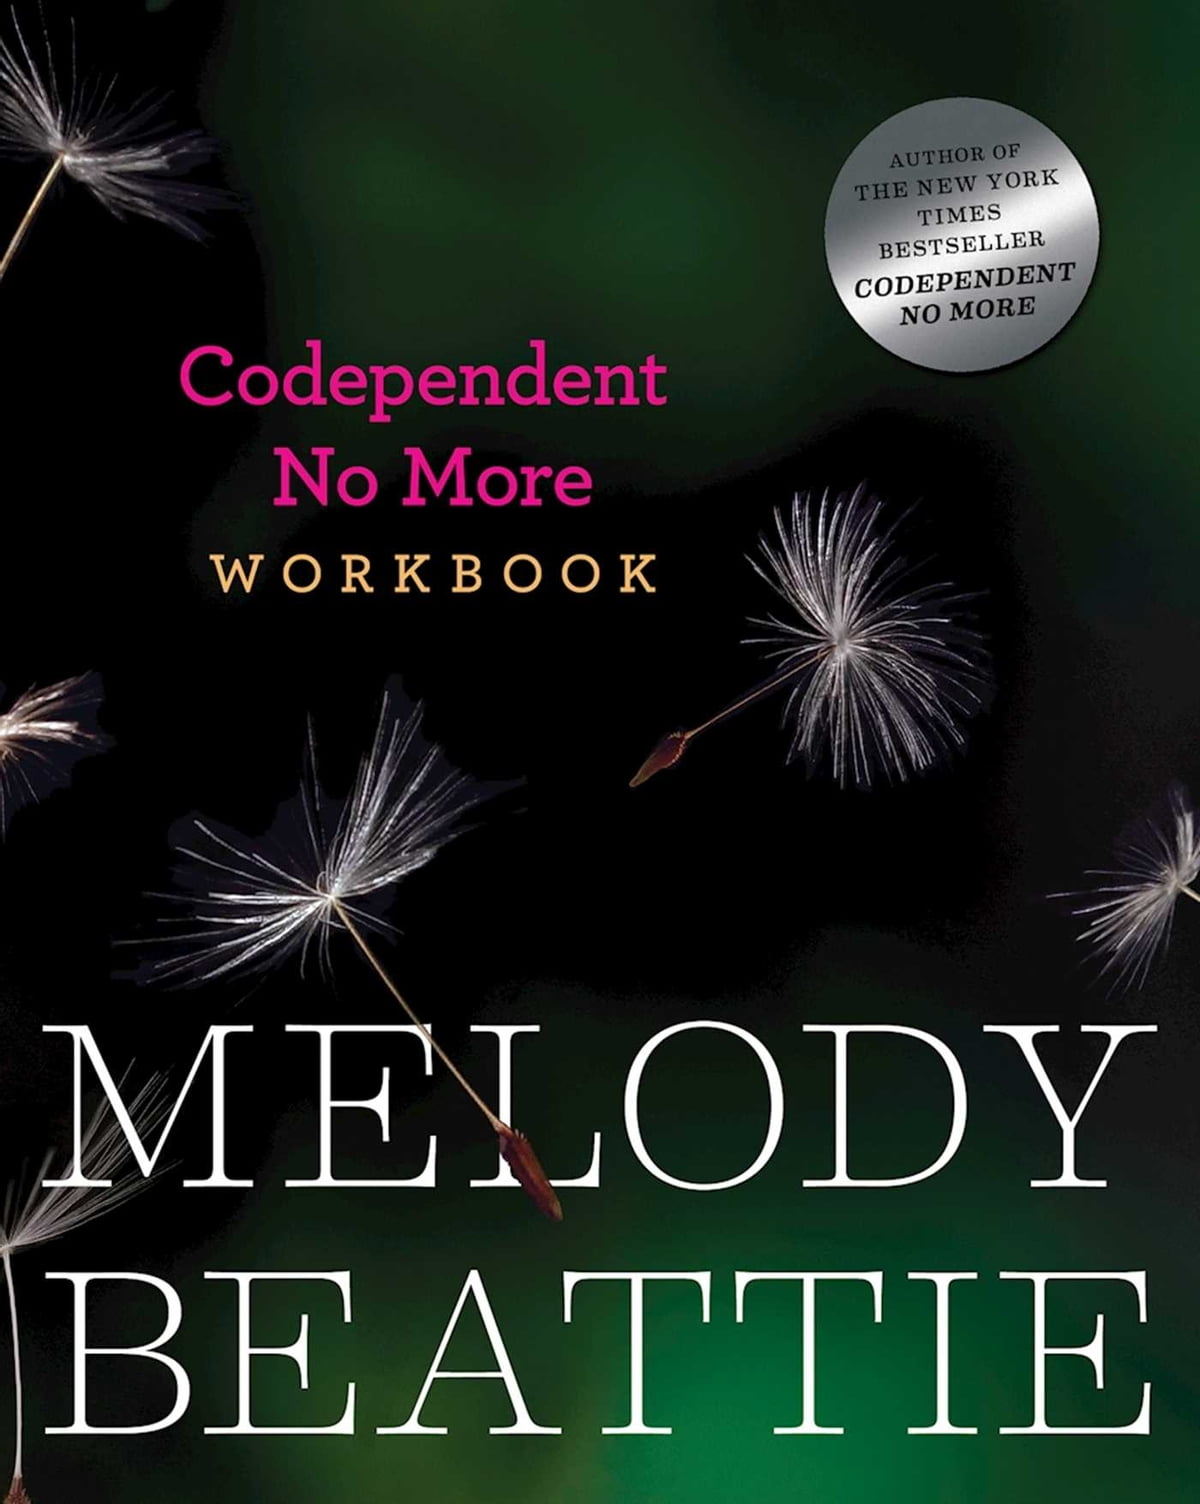 Workbooks codependency workbook free : Codependent No More Workbook eBook by Melody Beattie ...